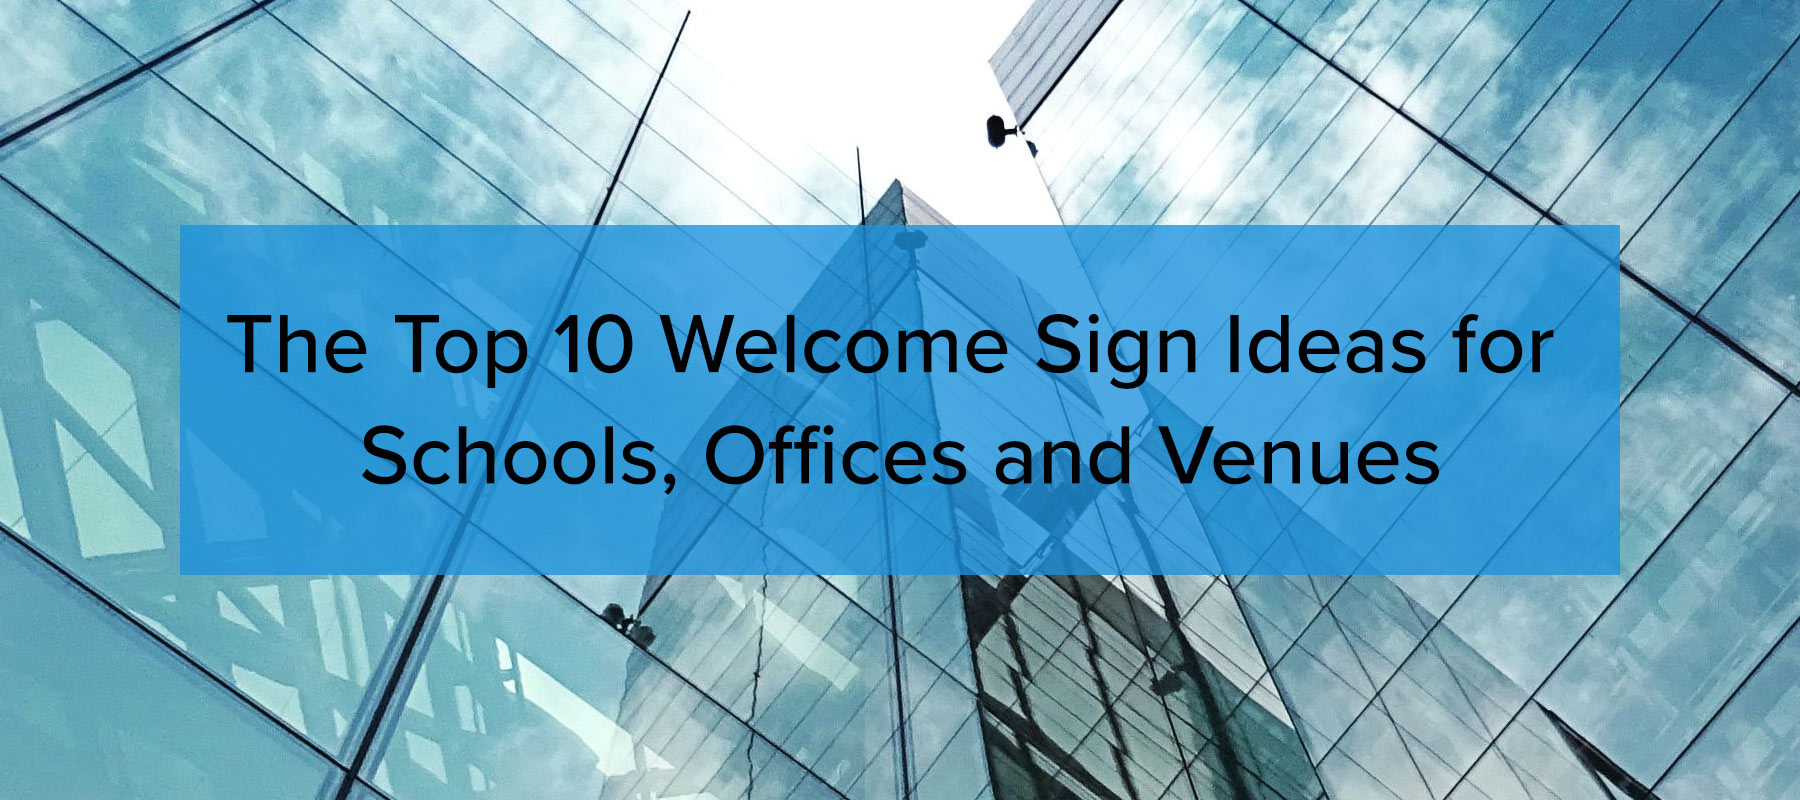 The Top 10 welcome sign ideas for schools offices and venues